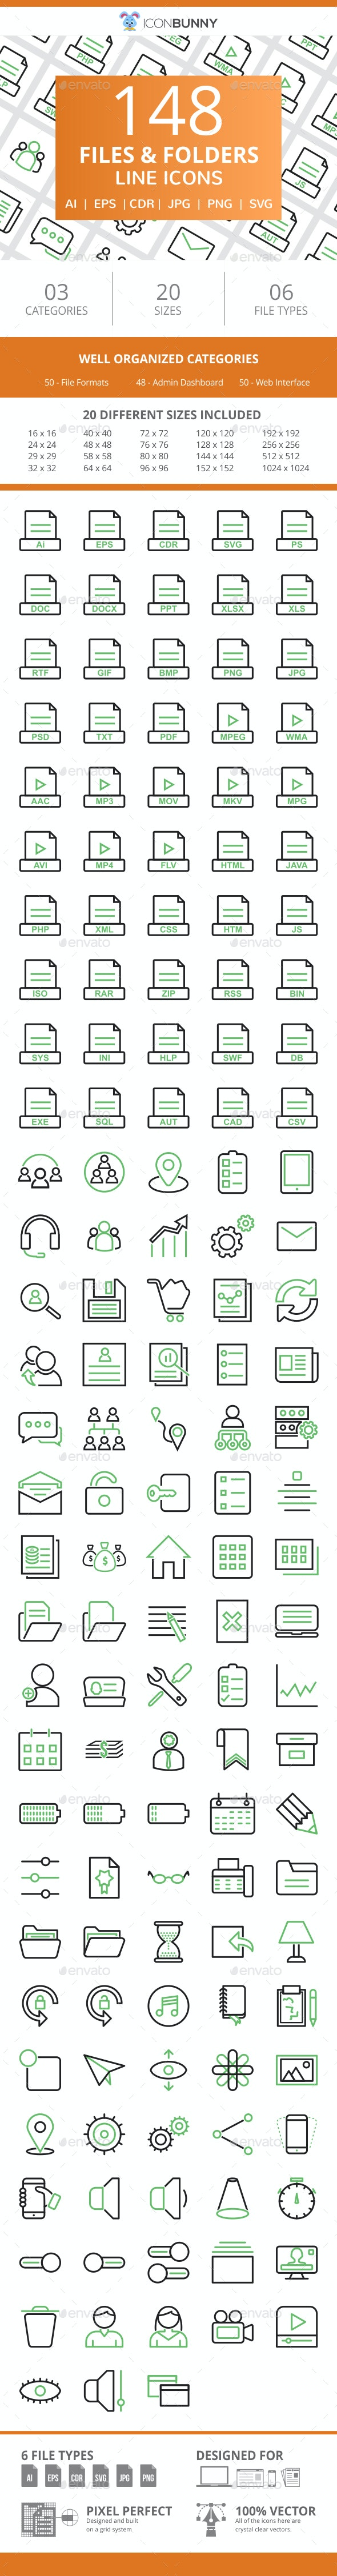 148 Files & Folders Line Green & Black Icons - Icons